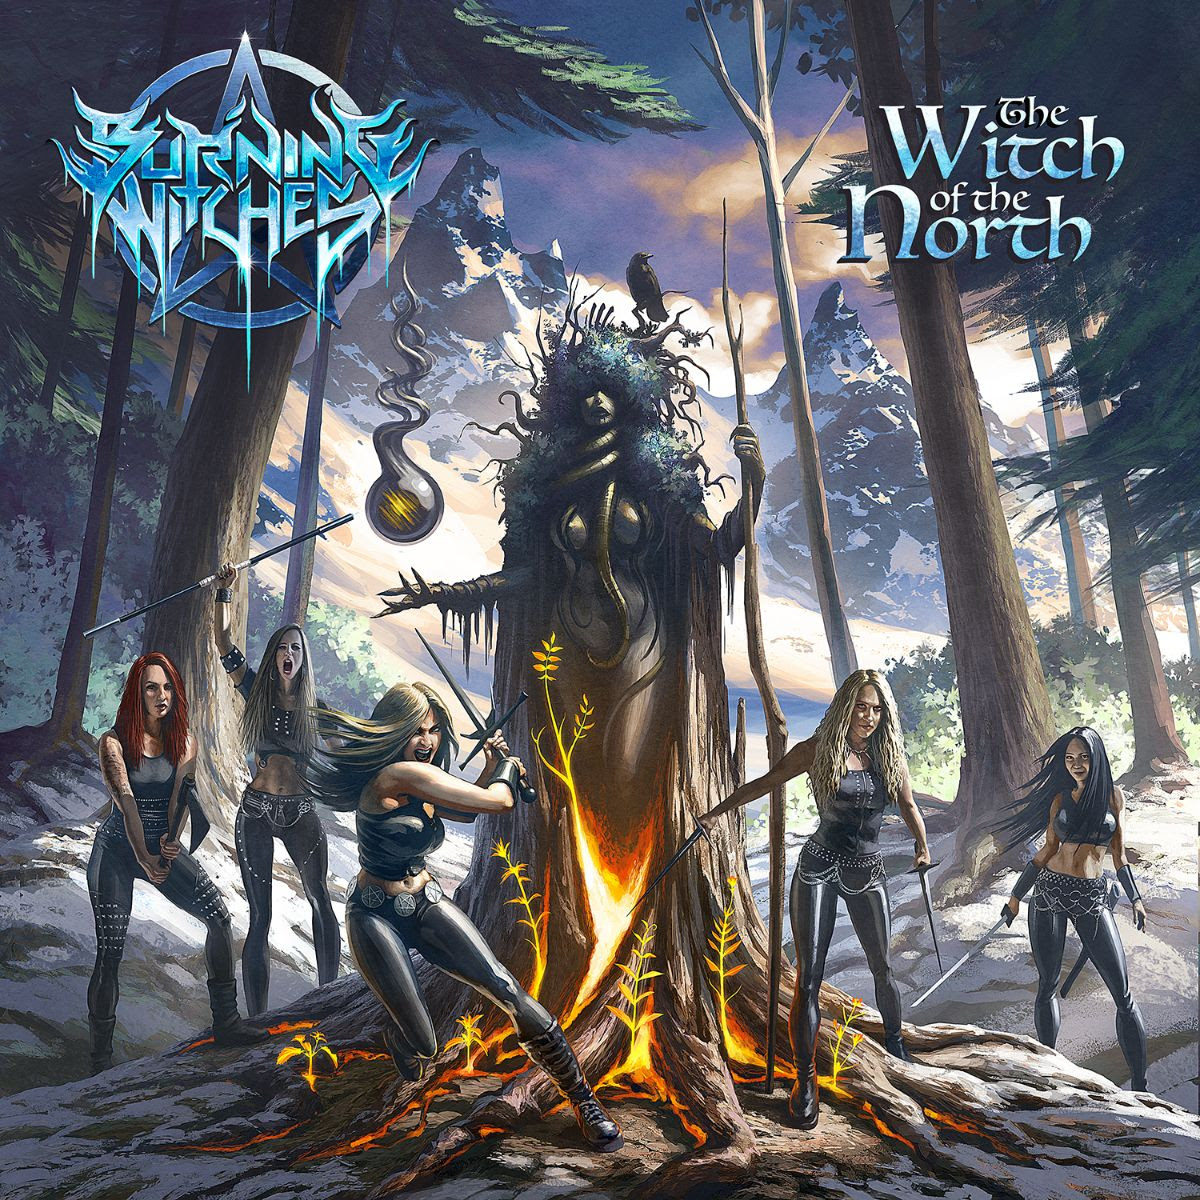 Burning Witches To Release New Album 'The Witch Of The North' On May 28th